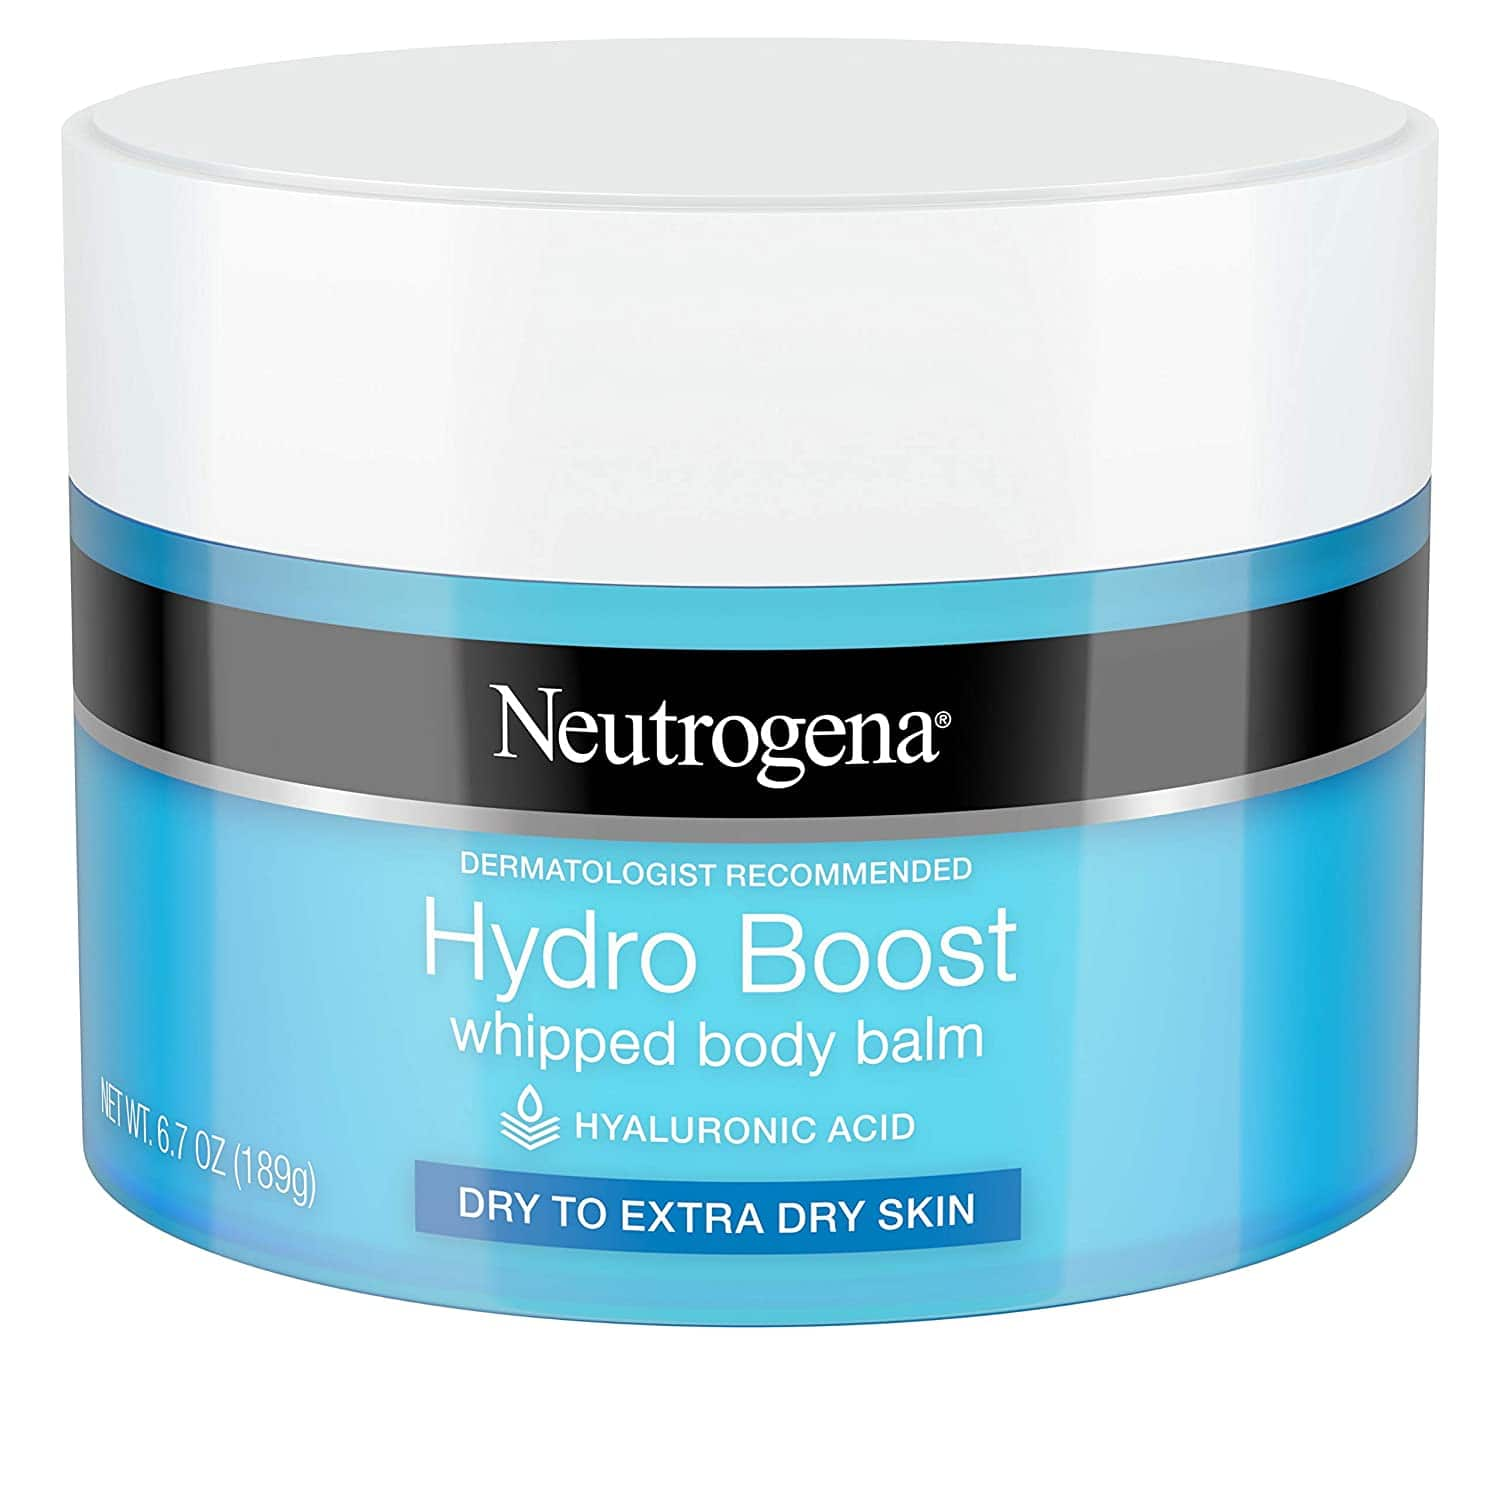 6.7-Oz Neutrogena Hydro Boost Hydrating Whipped Body Balm $4.36 w/ S&S + Free Shipping w/ Prime or $25+